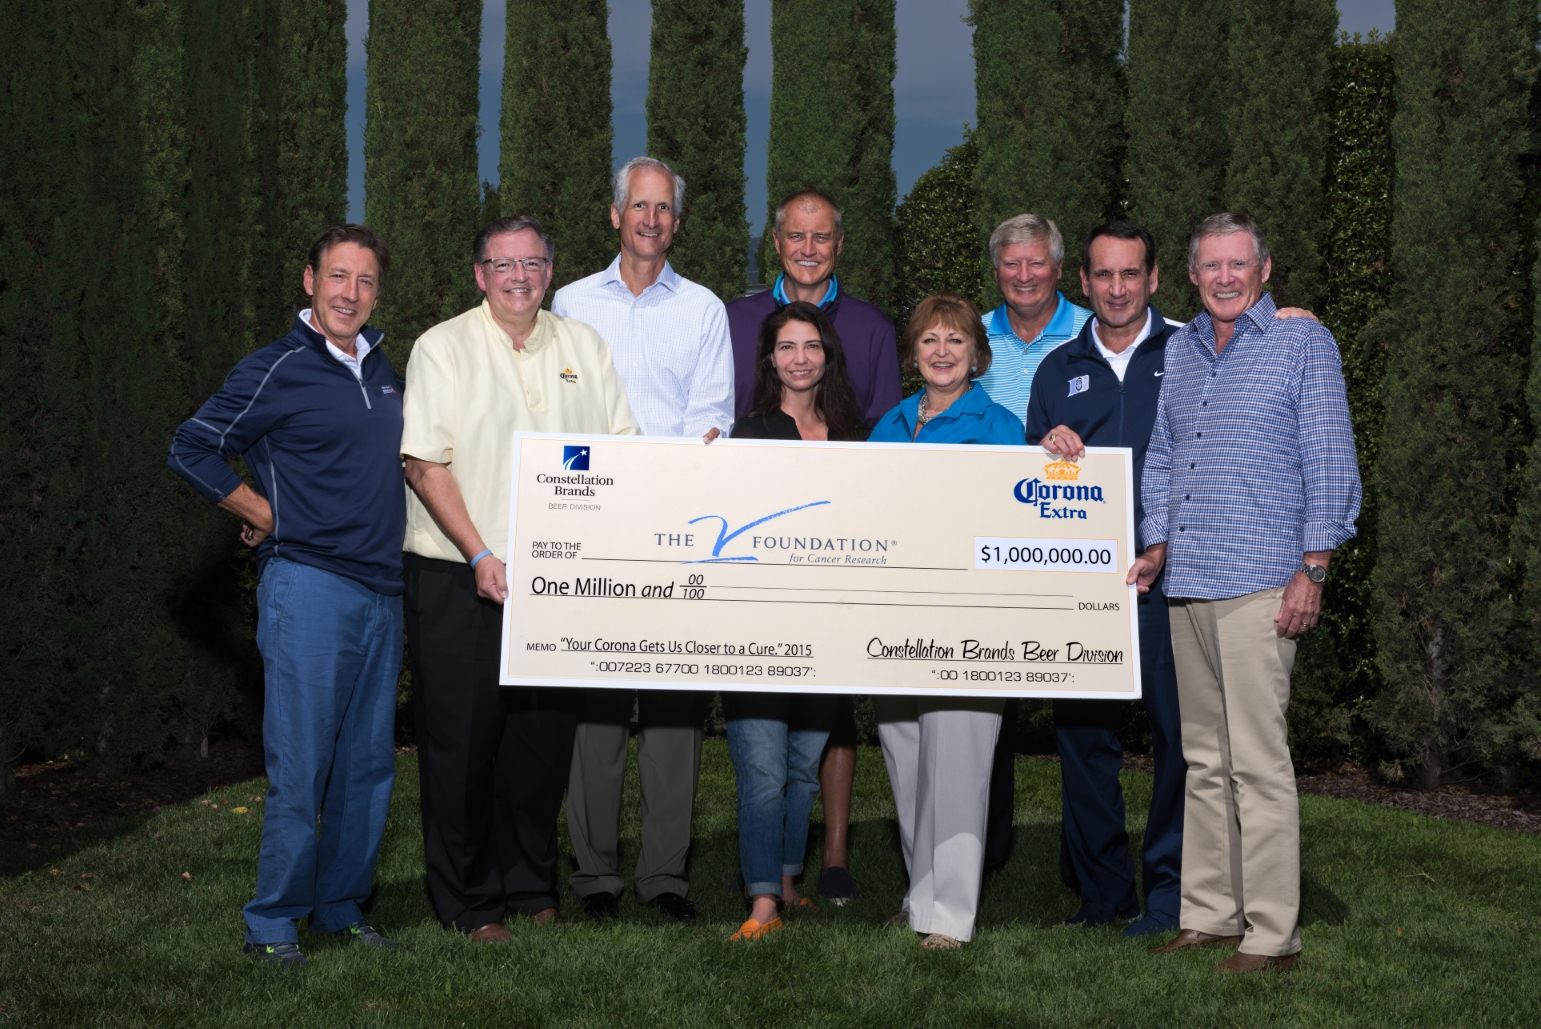 Constellation Brands' Senior Vice President of Corporate Affairs, Jim Ryan (attached photo, second from left), and Howard Young (third from left), President of General Wholesale Beer Company in Atlanta, Ga., presented a check in the amount of $1,000,000 to members of the board of directors from The V Foundation for Cancer Research. Featured in the photo are Chief Executive Officer of The V Foundation, Susan Braun (third from right), and Mike Krzyzewski (second from right), head coach of the Duke Blue Devils men's basketball team and close friend of the late Jim Valvano.